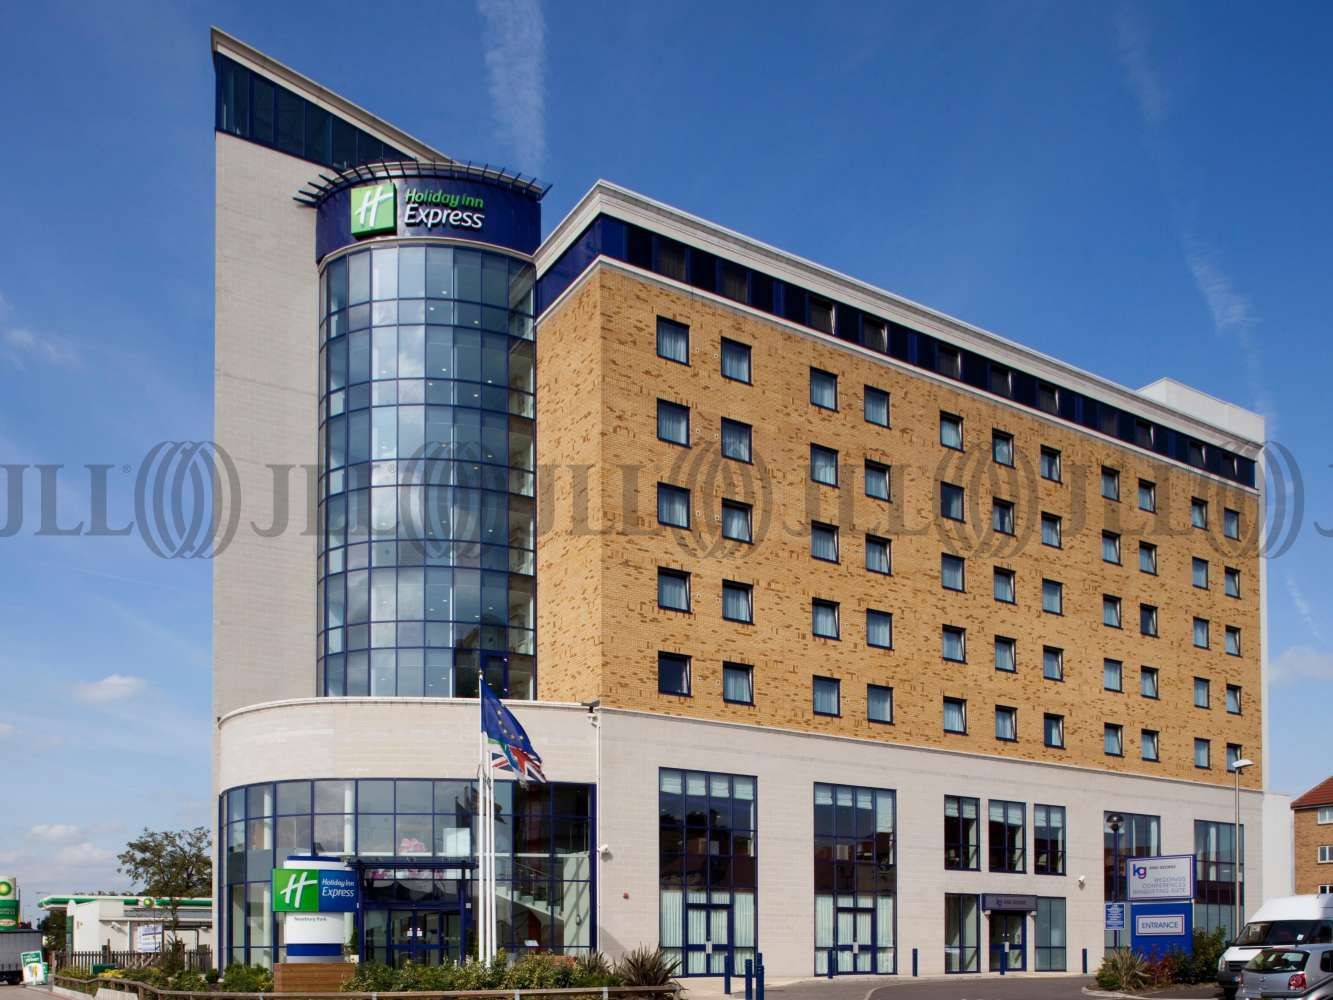 Hotel Ilford, IG2 7RH - Holiday Inn Express London - Newbury Park - 93030